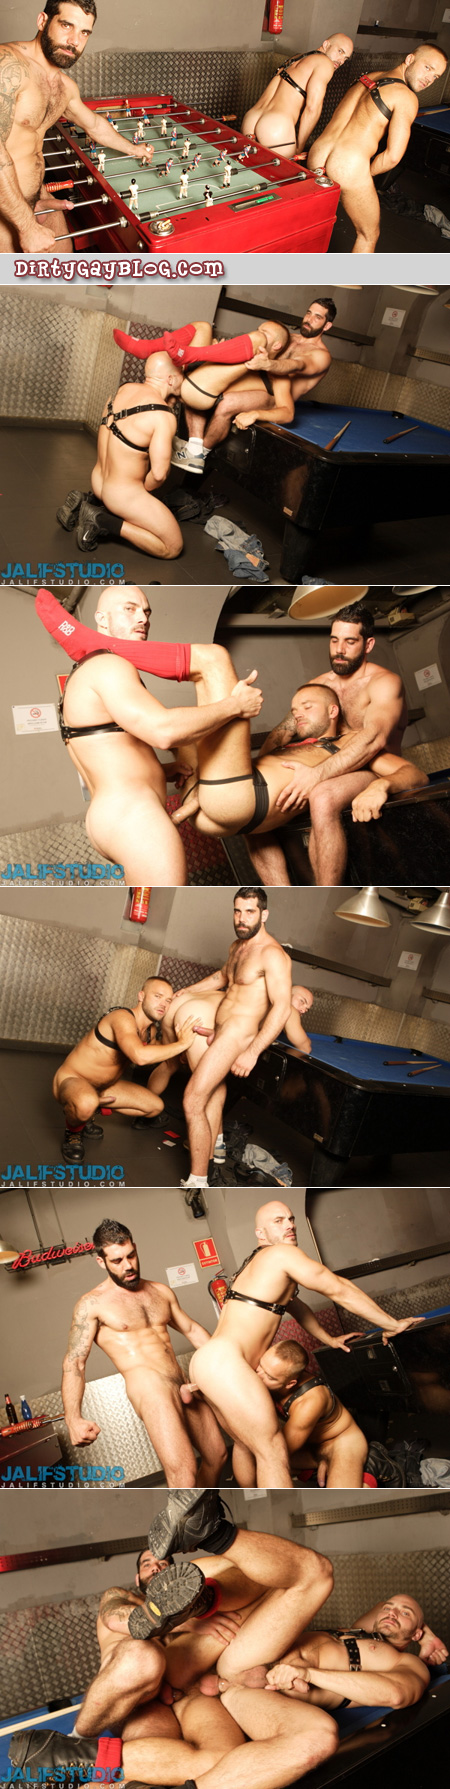 Fit, muscular dark-haired Daddy has gay sex with two shaved head guys in leather harnessess and boots.